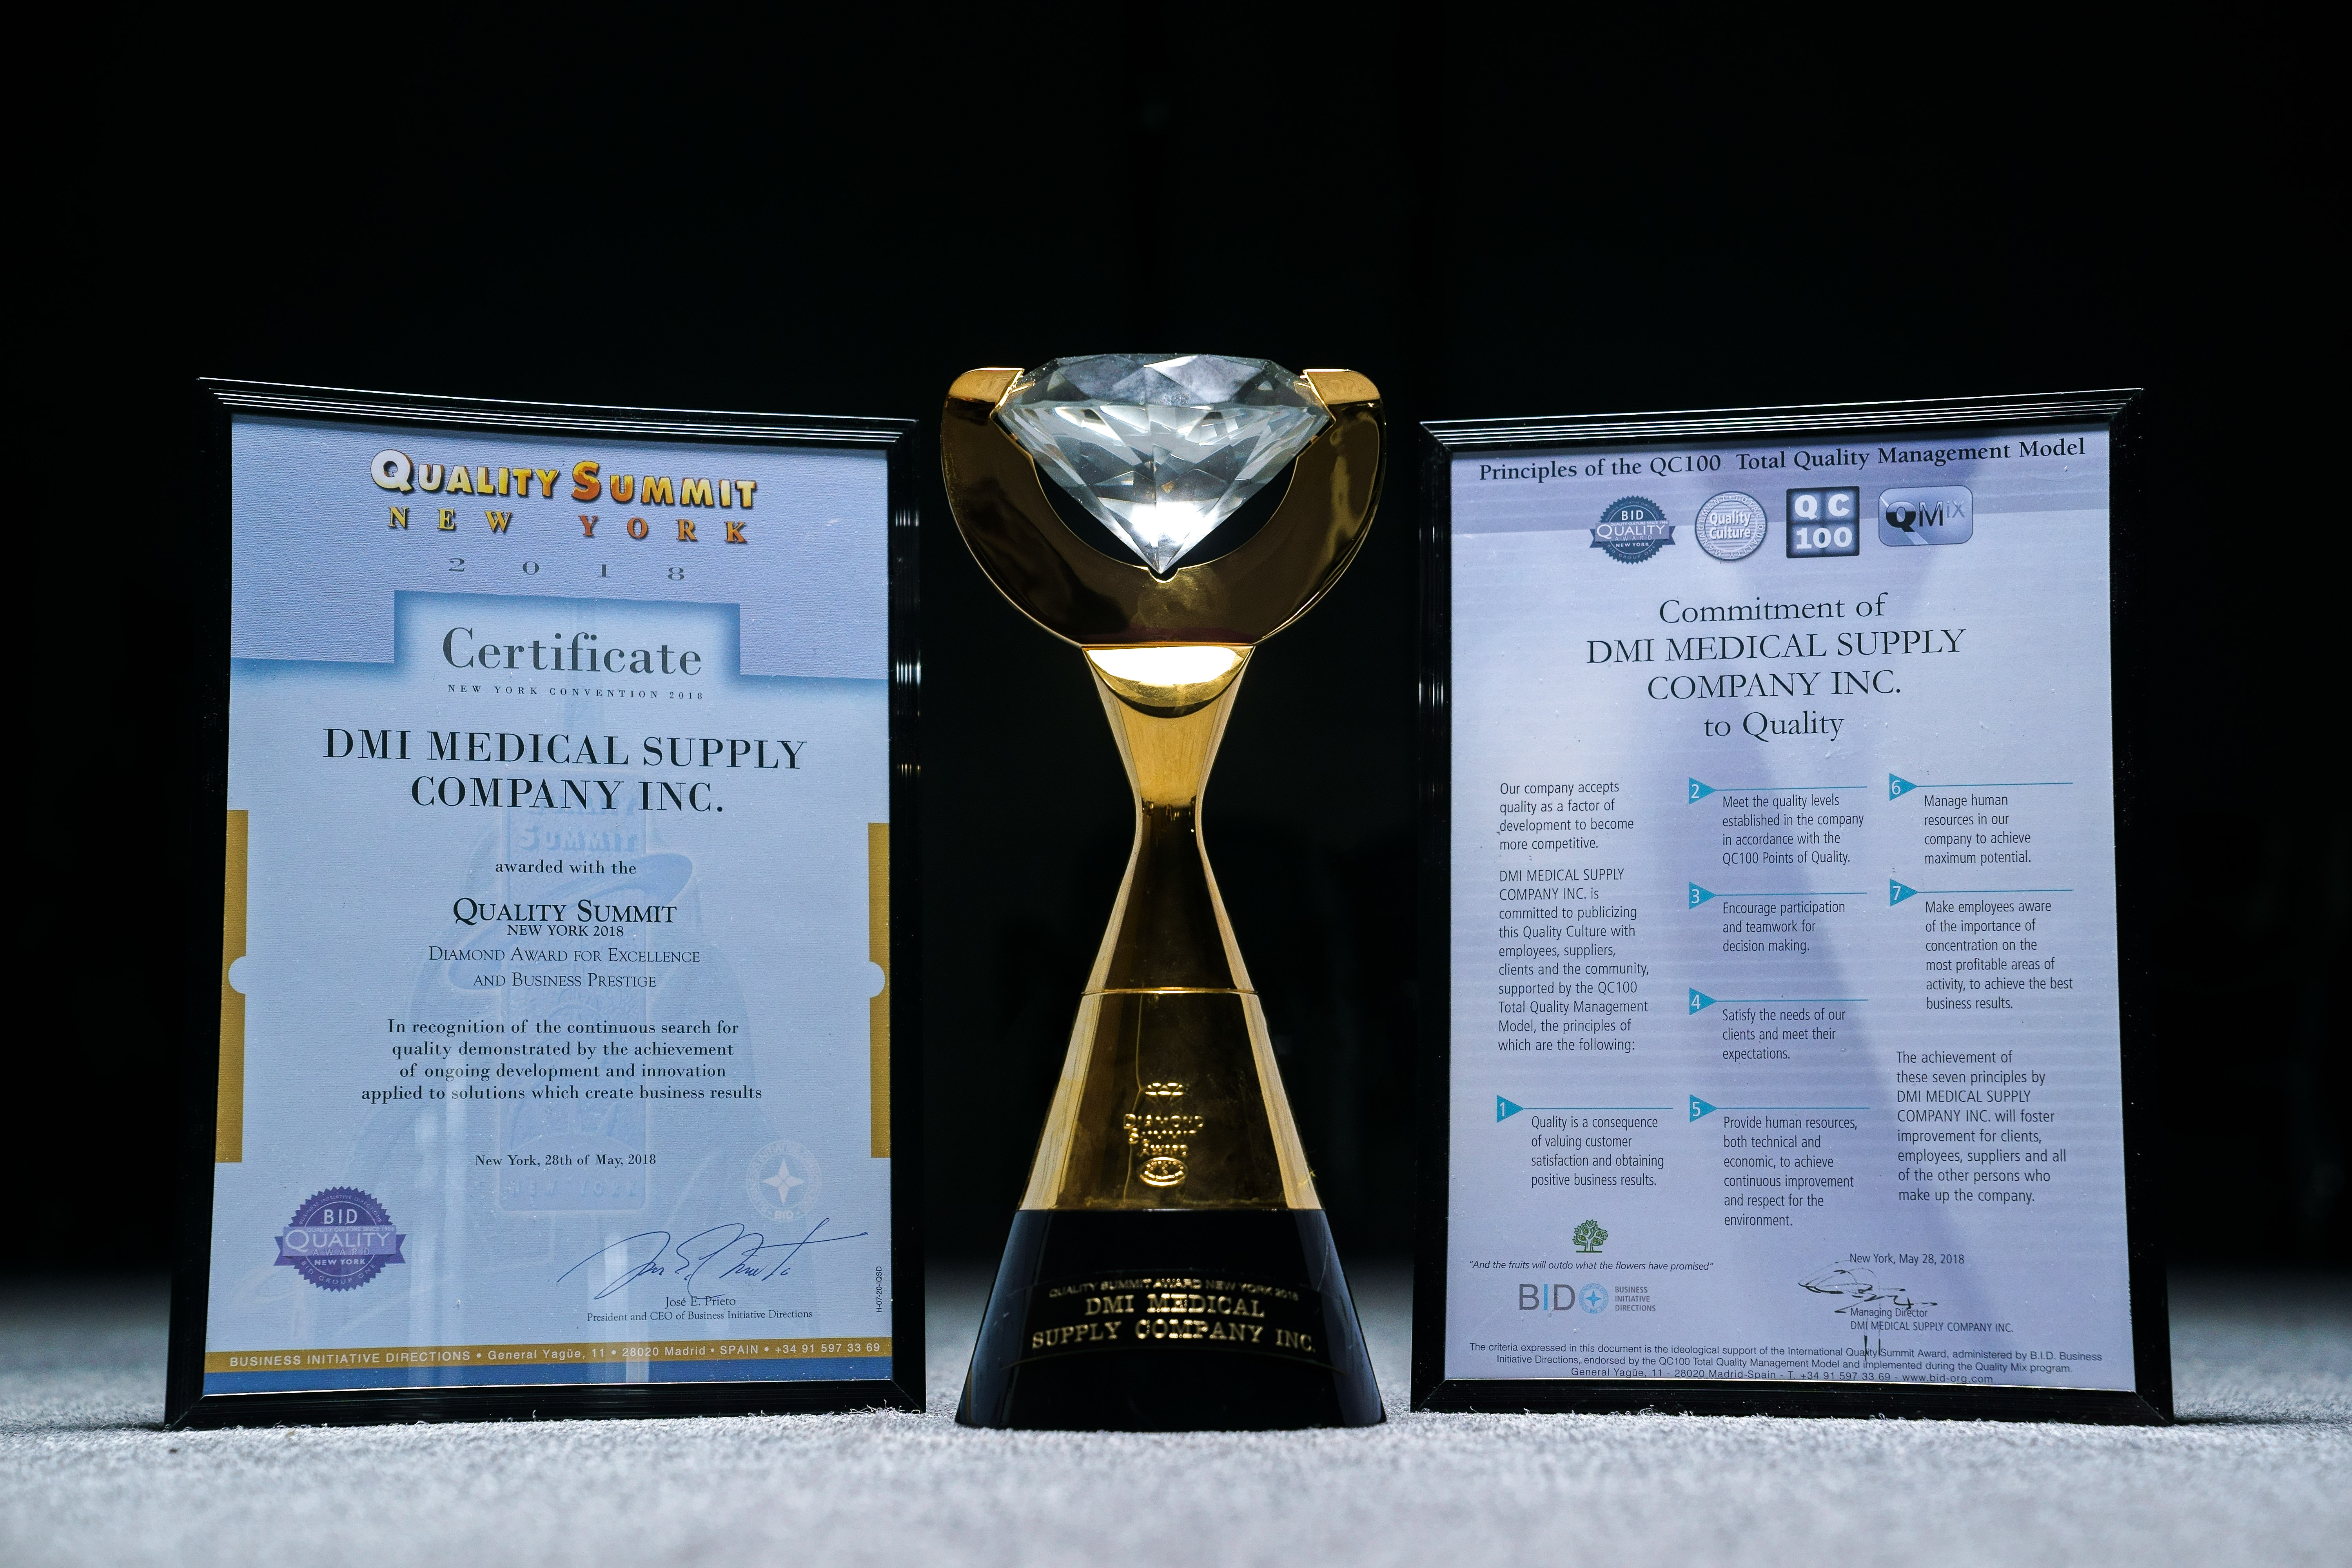 MX3 MAKER WINS 1Oth AWARD FROM THE INTERNATIONAL QUALITY SUMMIT IN NEW YORK